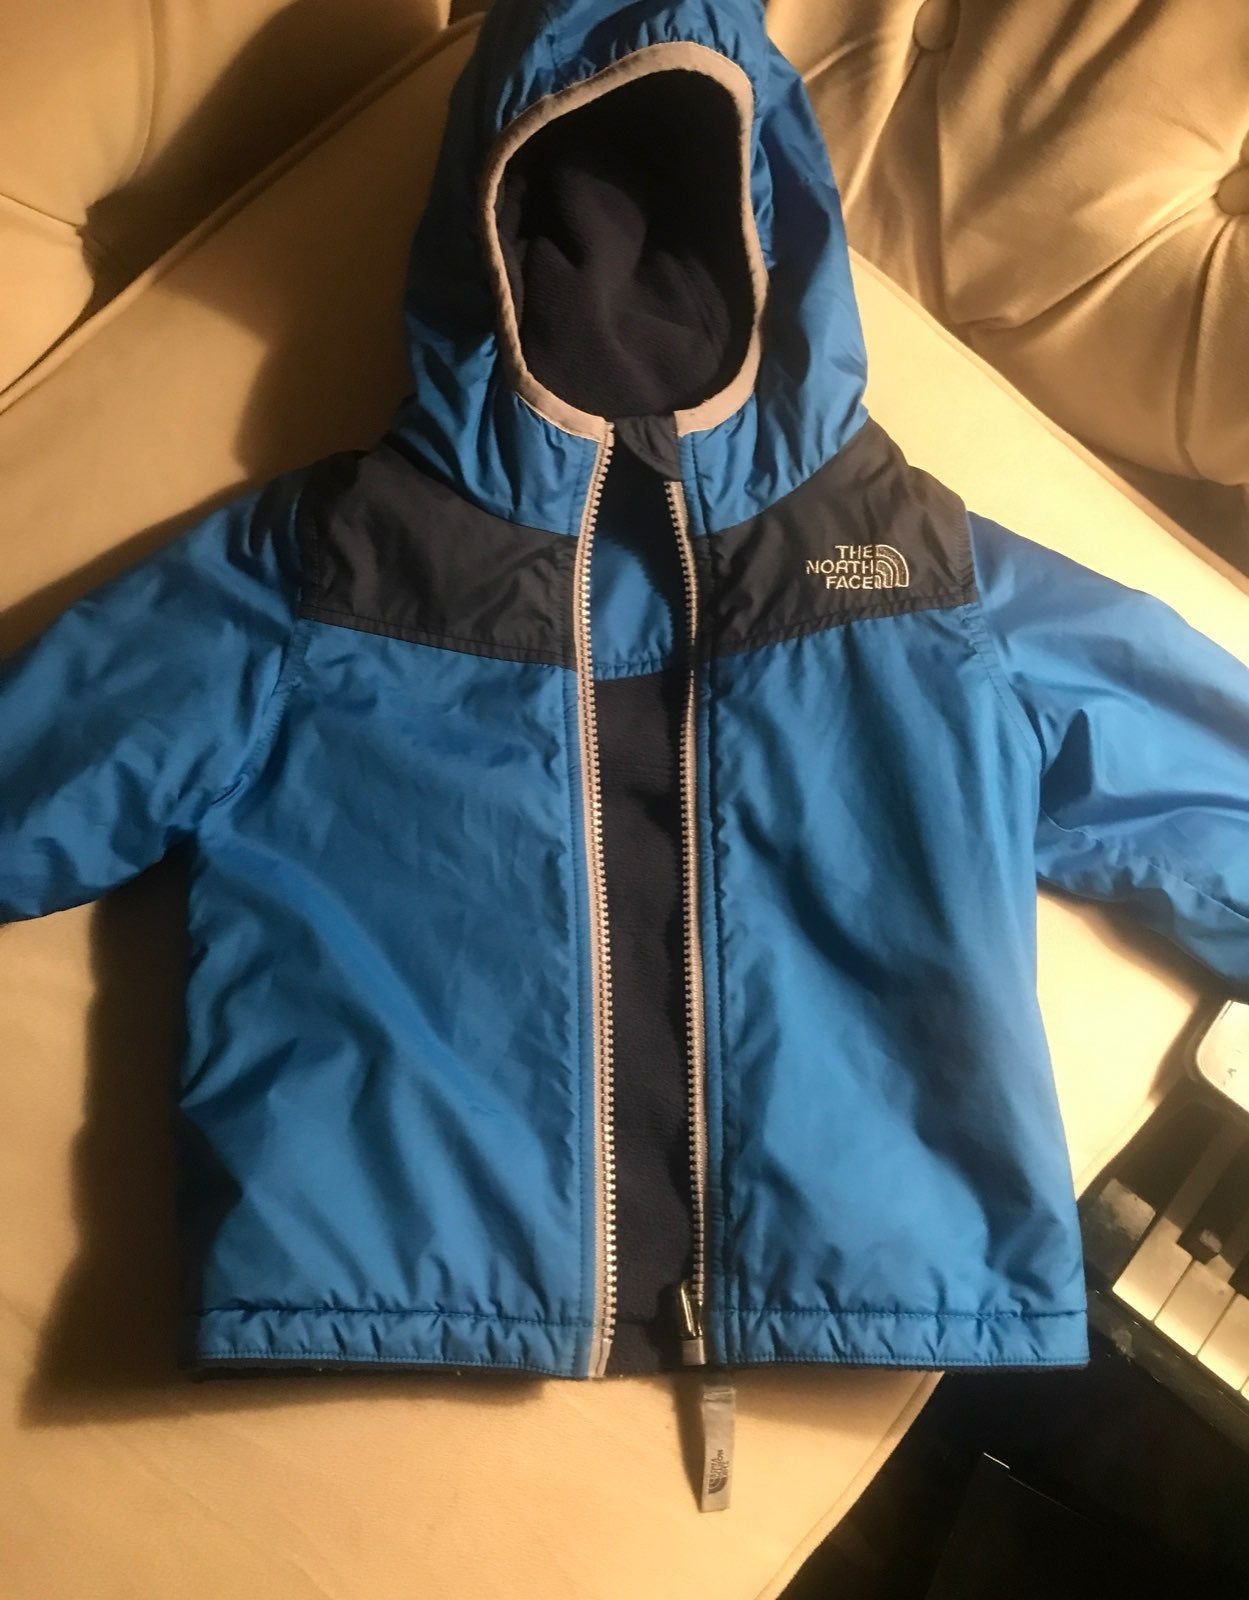 24 Months Baby Boy North Face Jacket Jackets North Face Coat North Face Jacket [ 1600 x 1249 Pixel ]